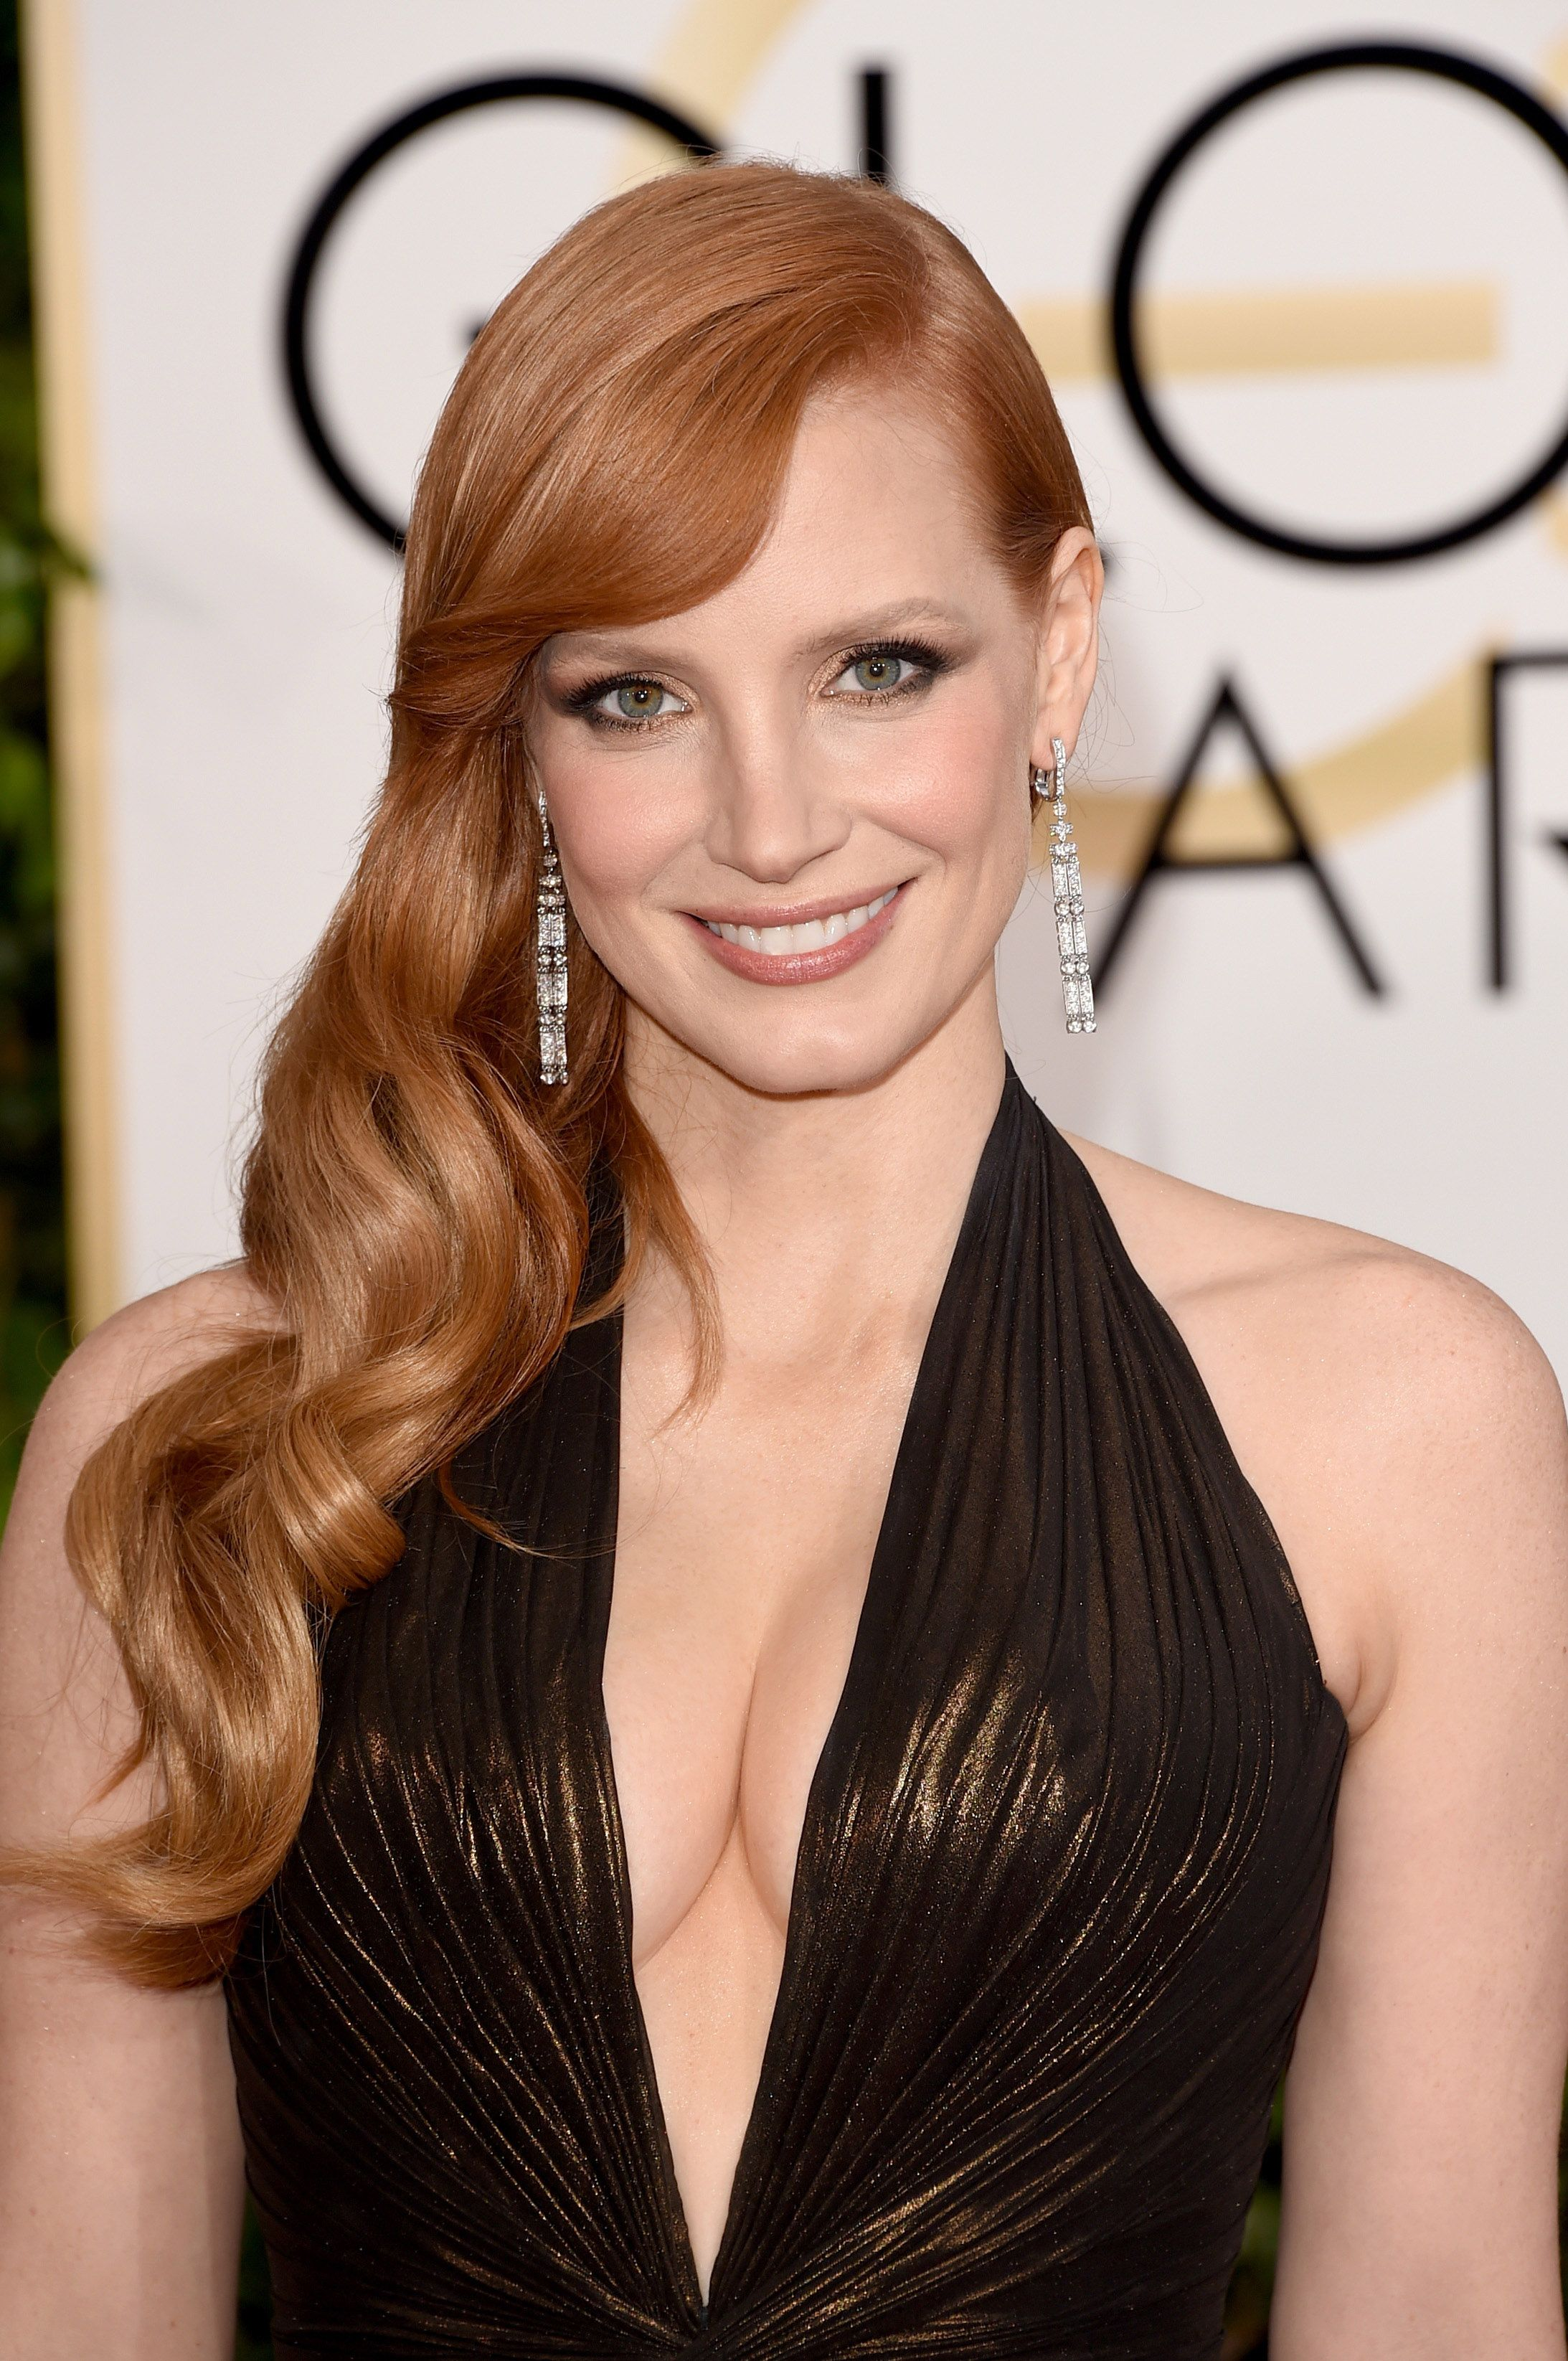 Jessica chastain sexy 67 Photos - 2019 year